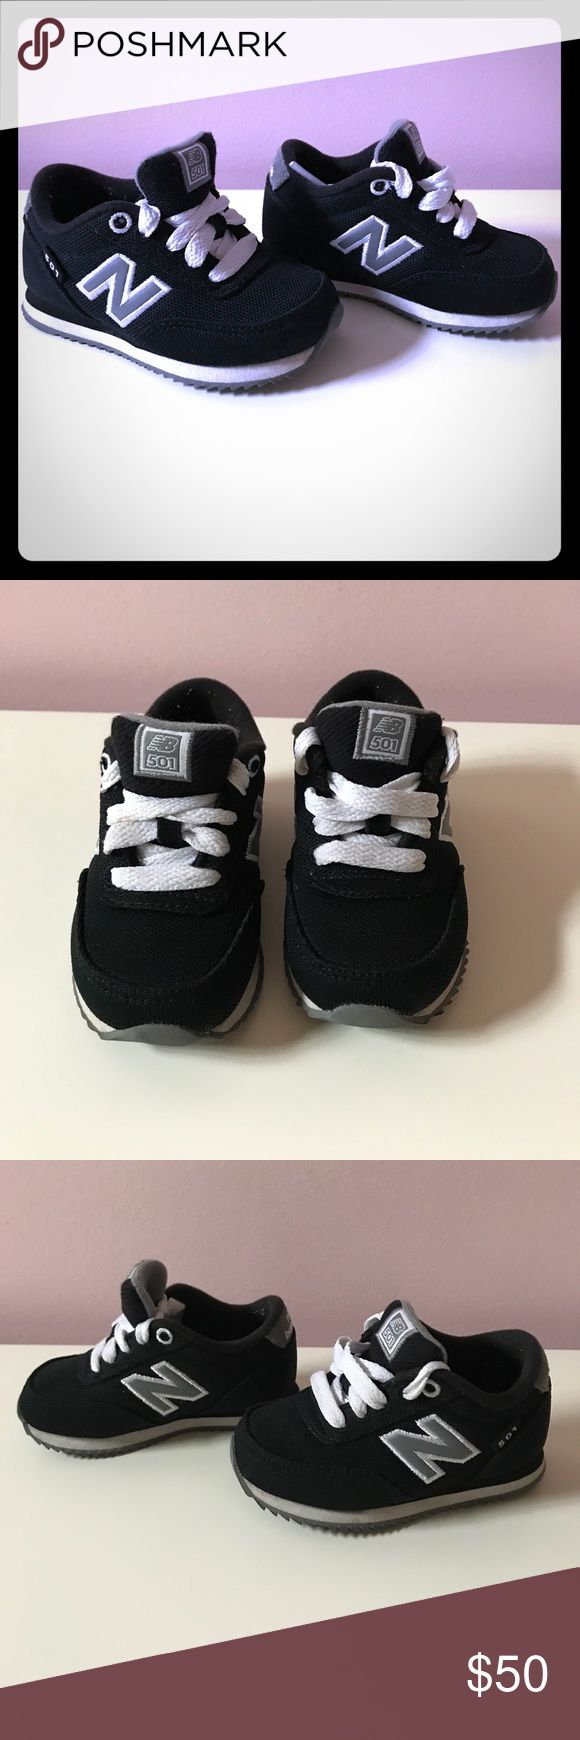 🚨SALE! 🚨CLOSET CLEARANCE! Toddler New Balance shoes! Barely worn!!! Excellent condition. Black/grey/white. Size: 5. New Balance Shoes Sneakers